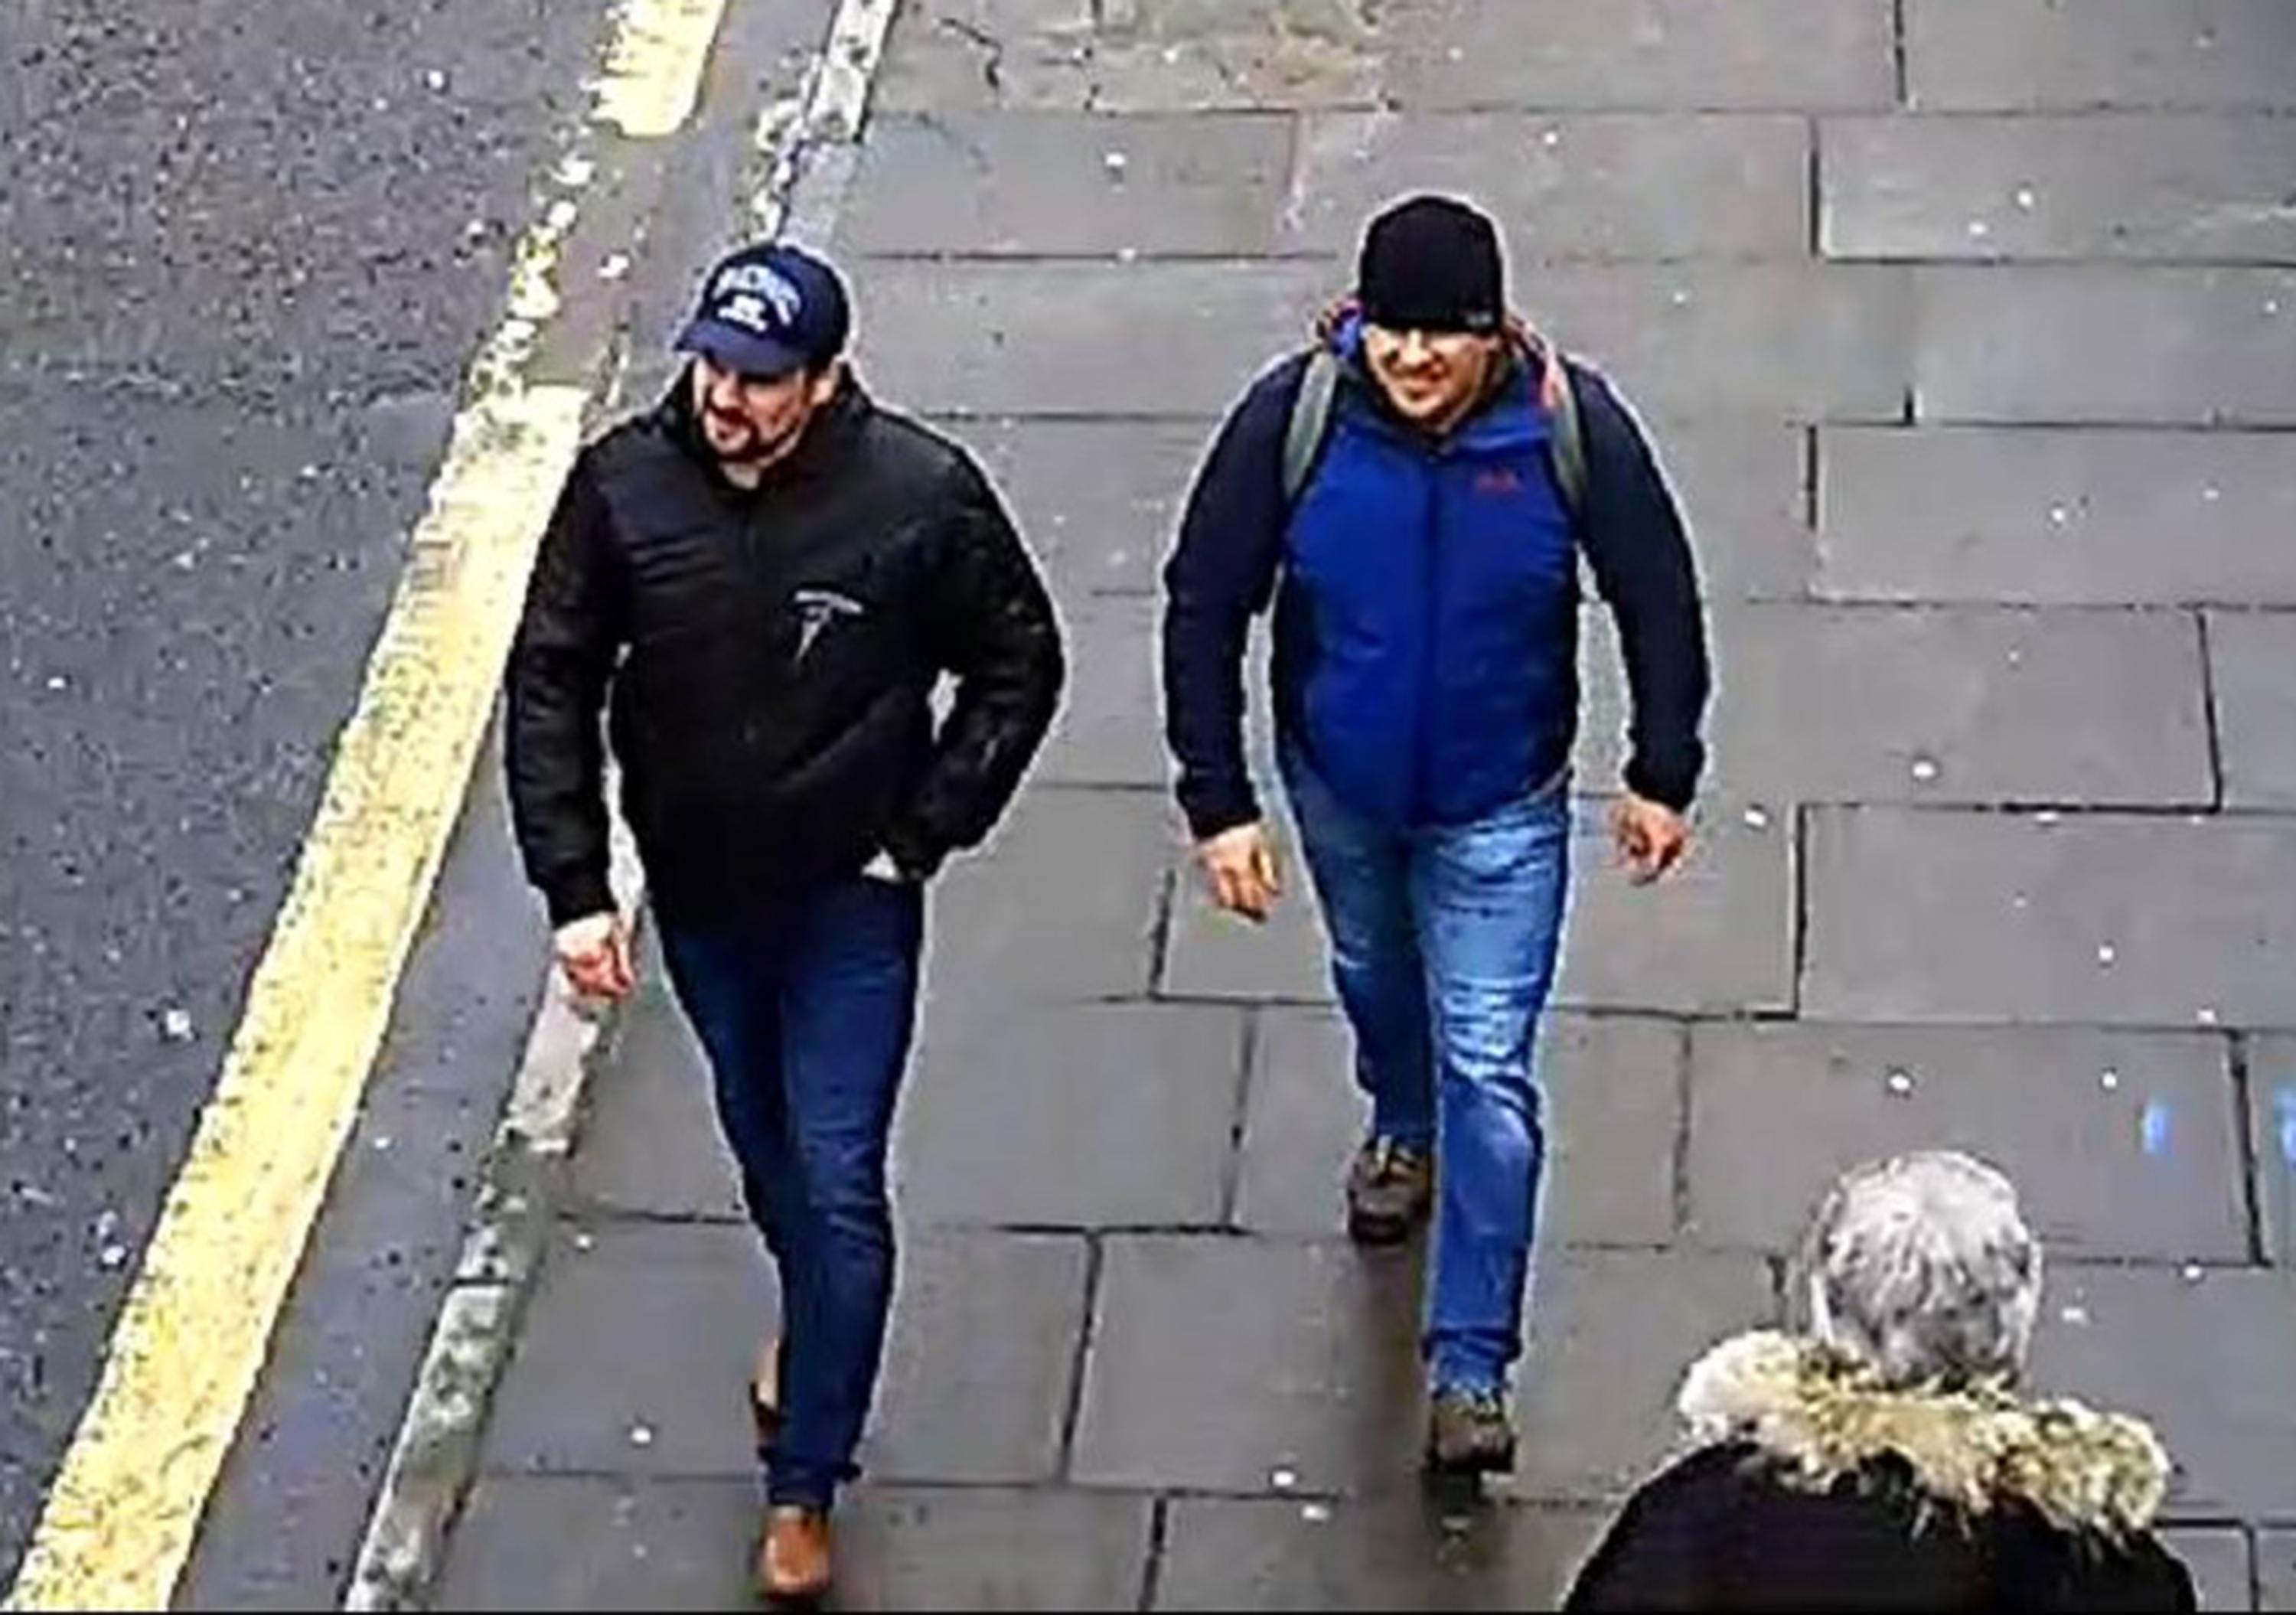 A handout photo issued by the Metropolitan Police, shows CCTV footage of poisoning suspects Alexander Petrov and Ruslan Boshirov, aka Anatoliy Chegipa, on Fisherton Road, Salisbury on 04 March 2018.